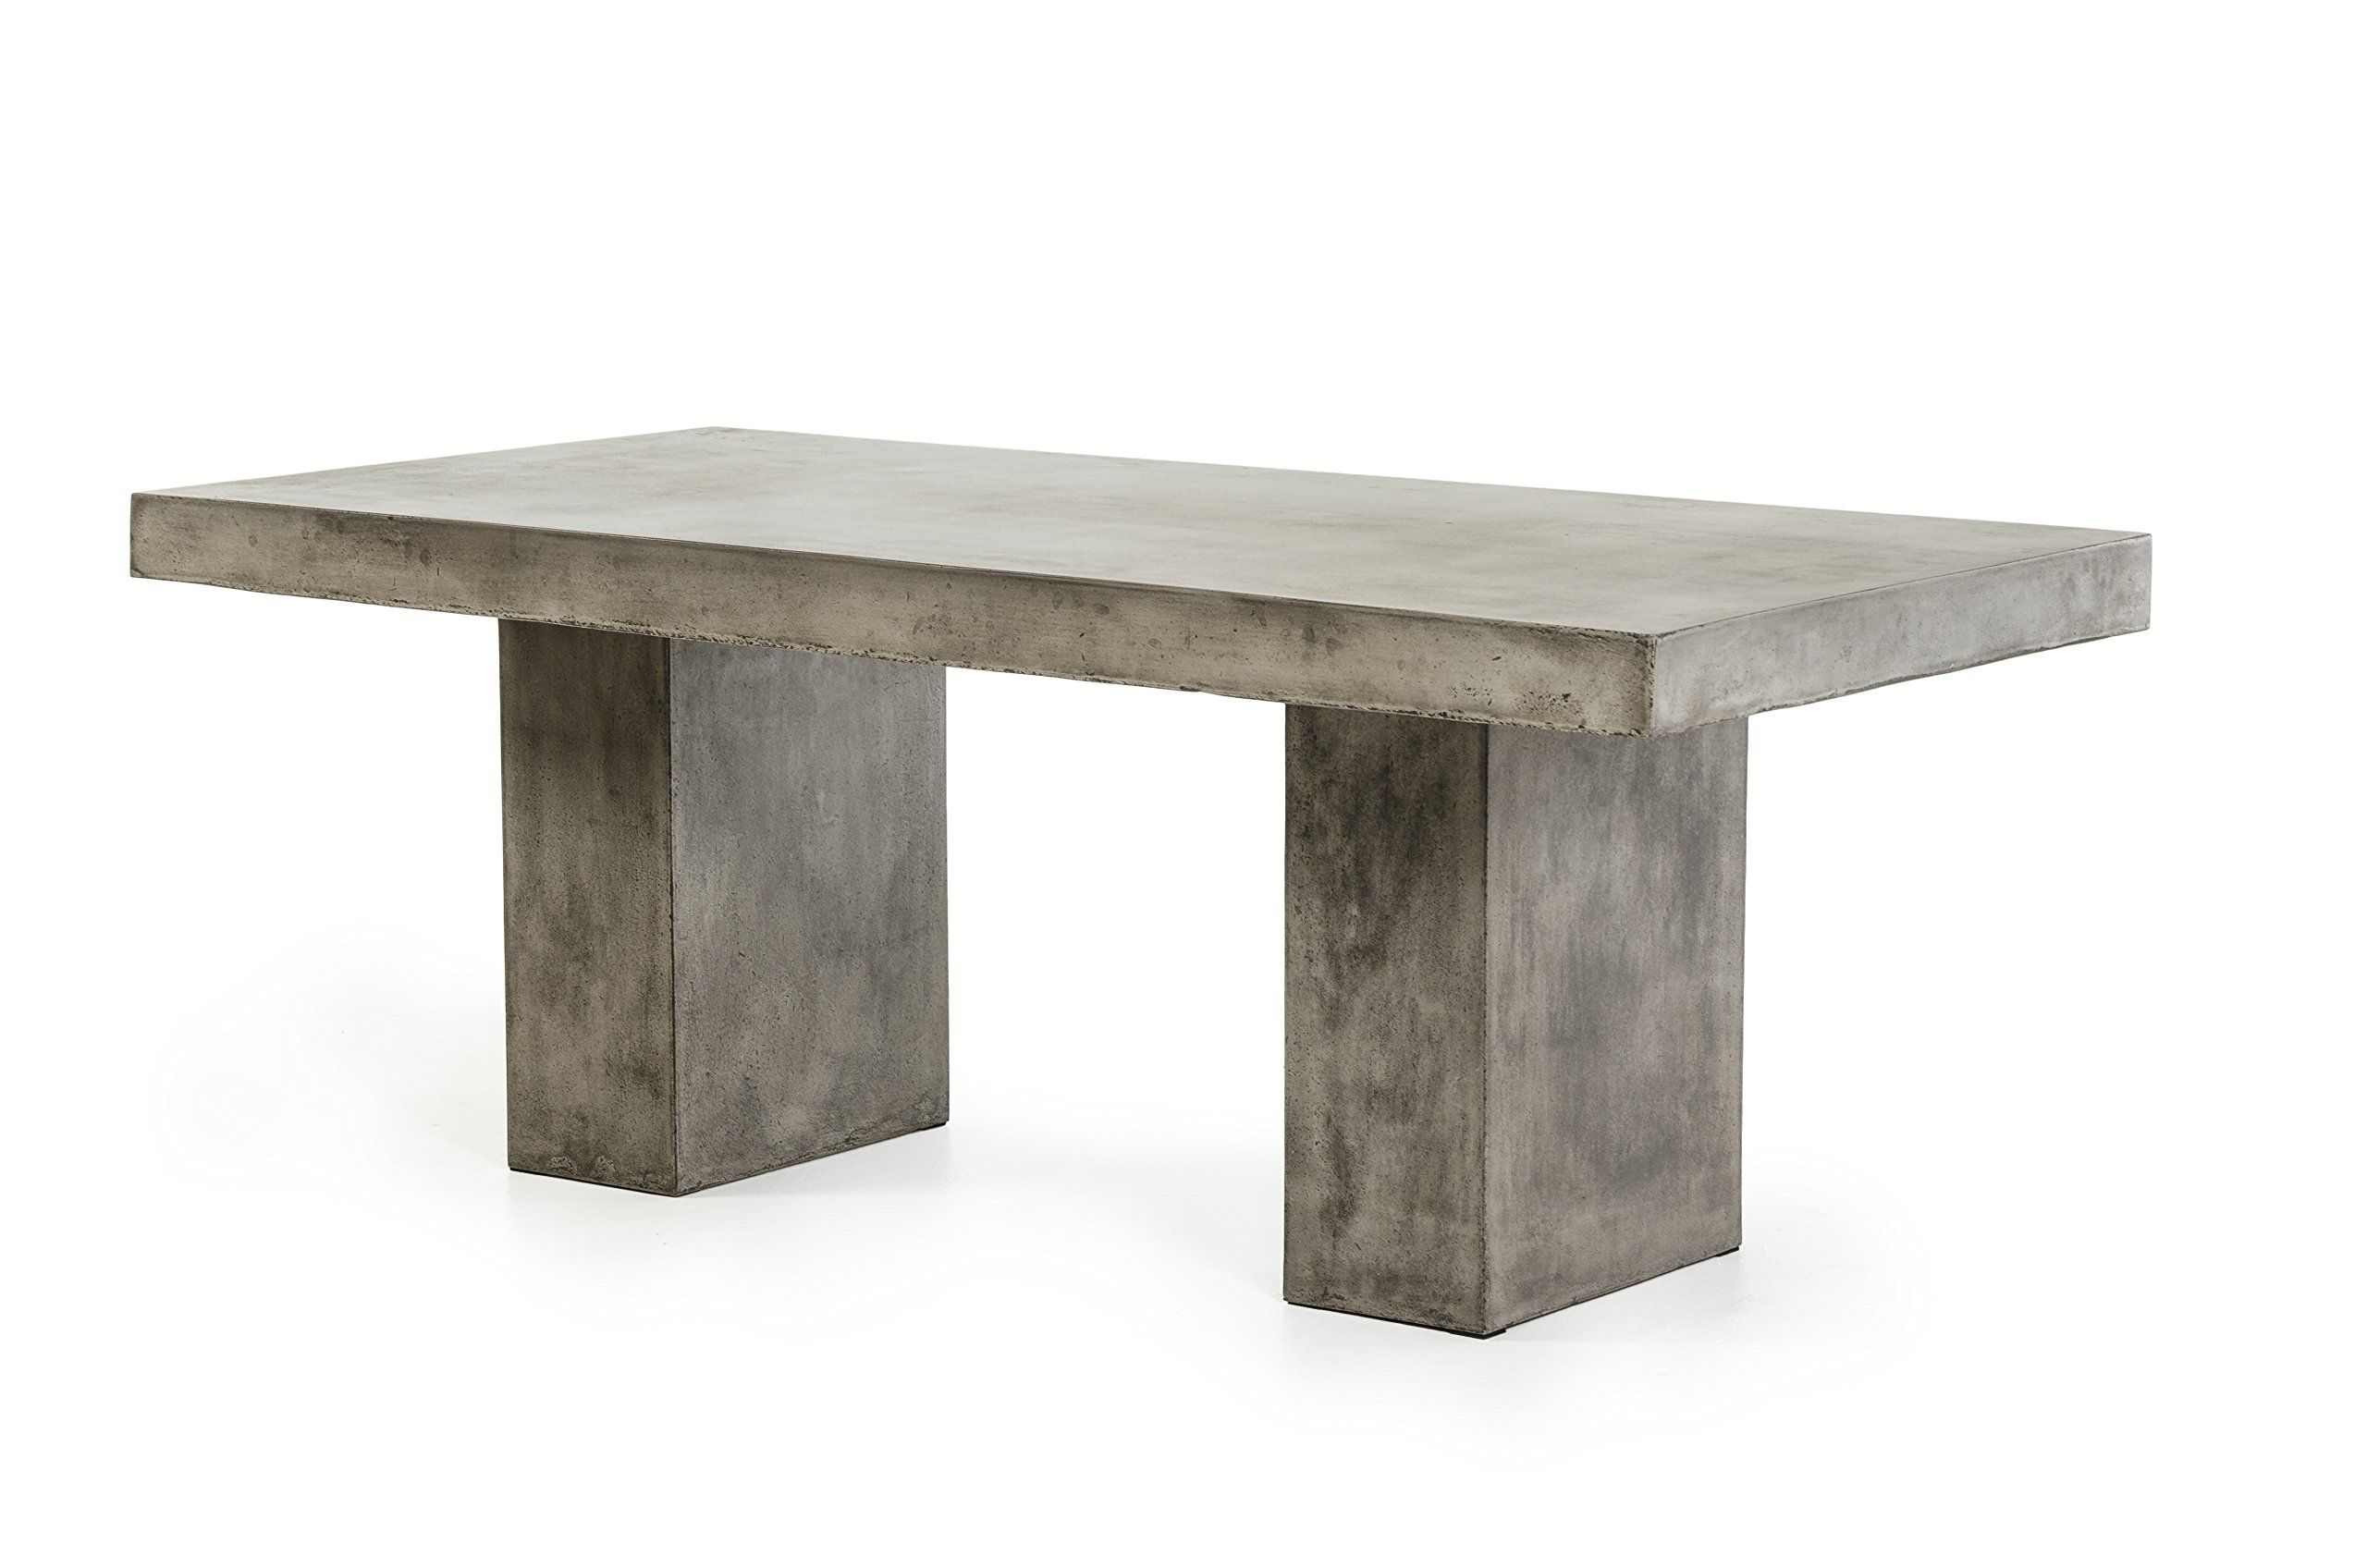 minimalist modern industrial office desk dining. Limari Home Rainie Collection Minimalist Industrial Style Concrete Rectangular Dining Table With Clean Lines, Dark Modern Office Desk